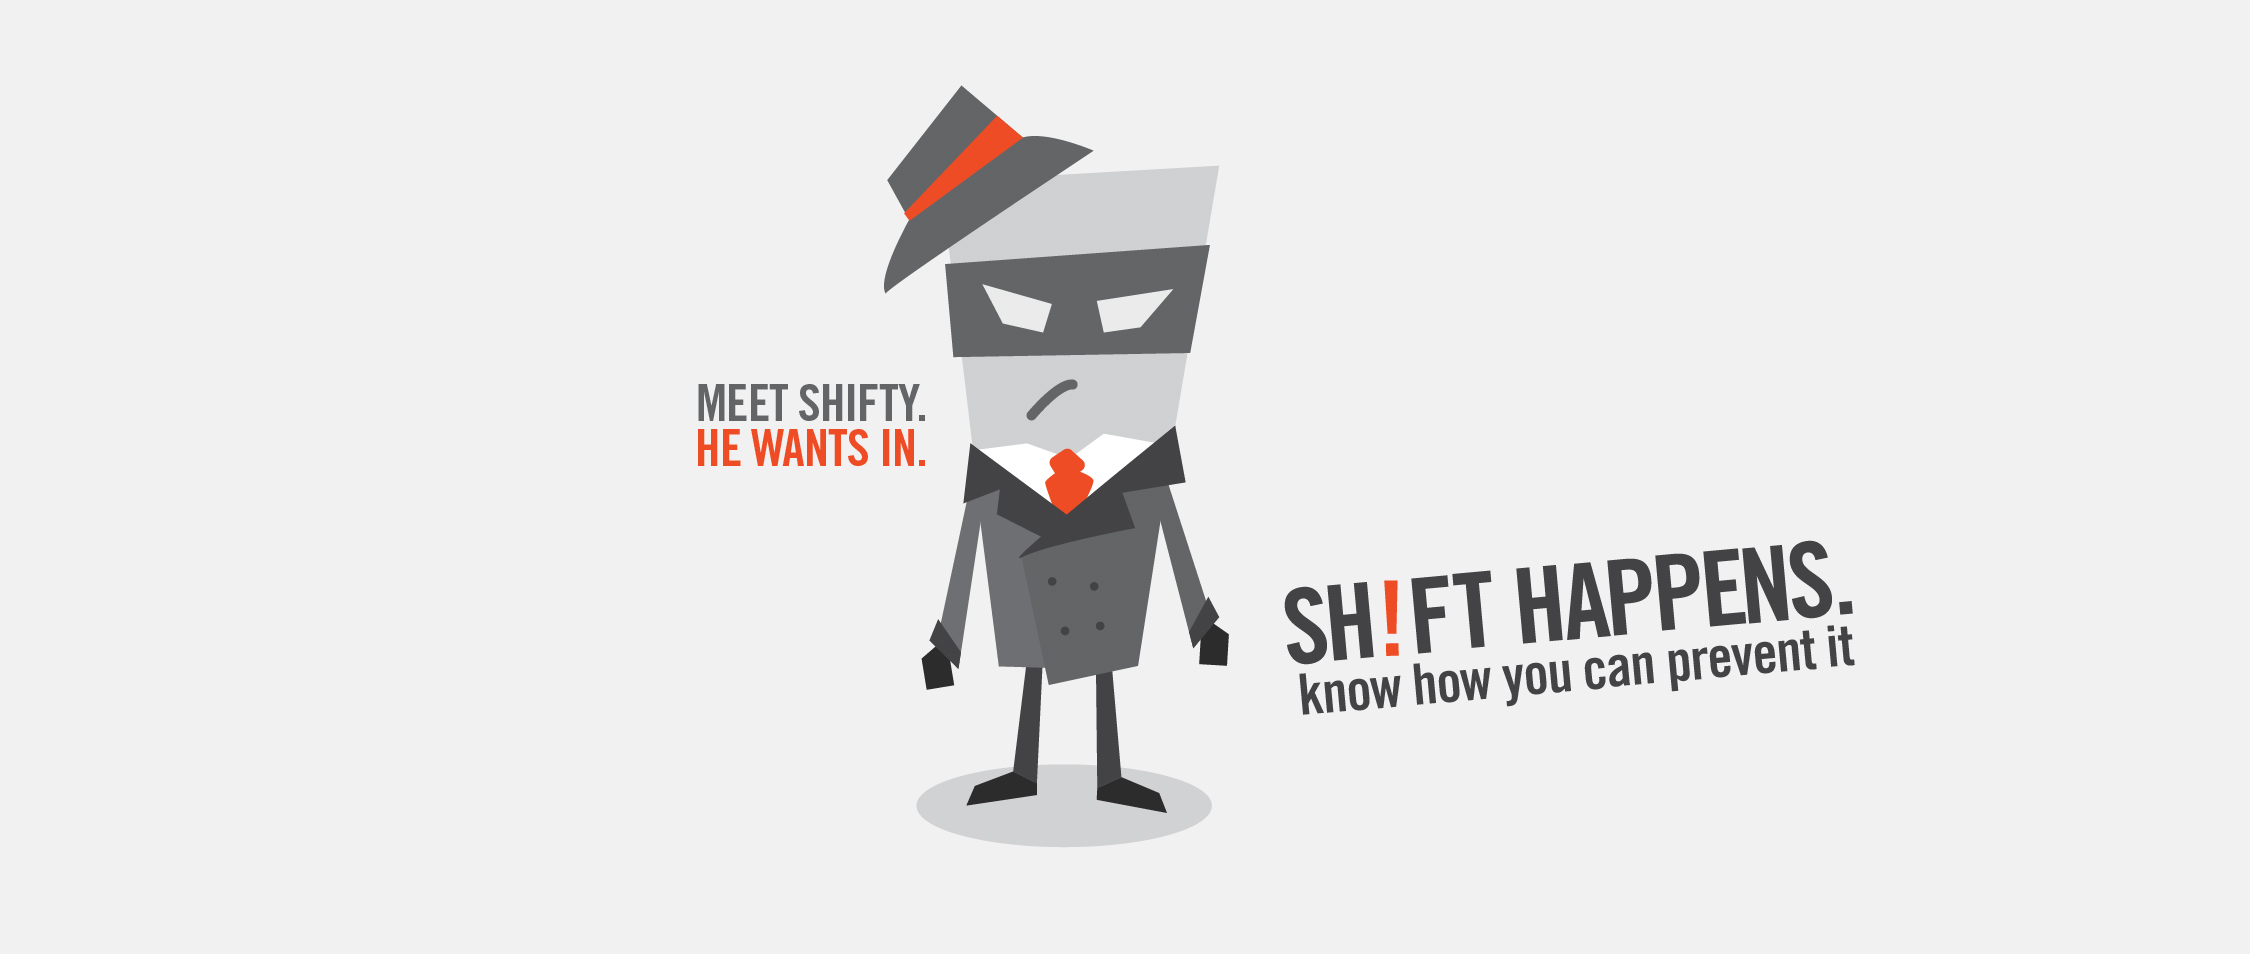 Behance_Shifty_1_meetshifty-smaller.jpg